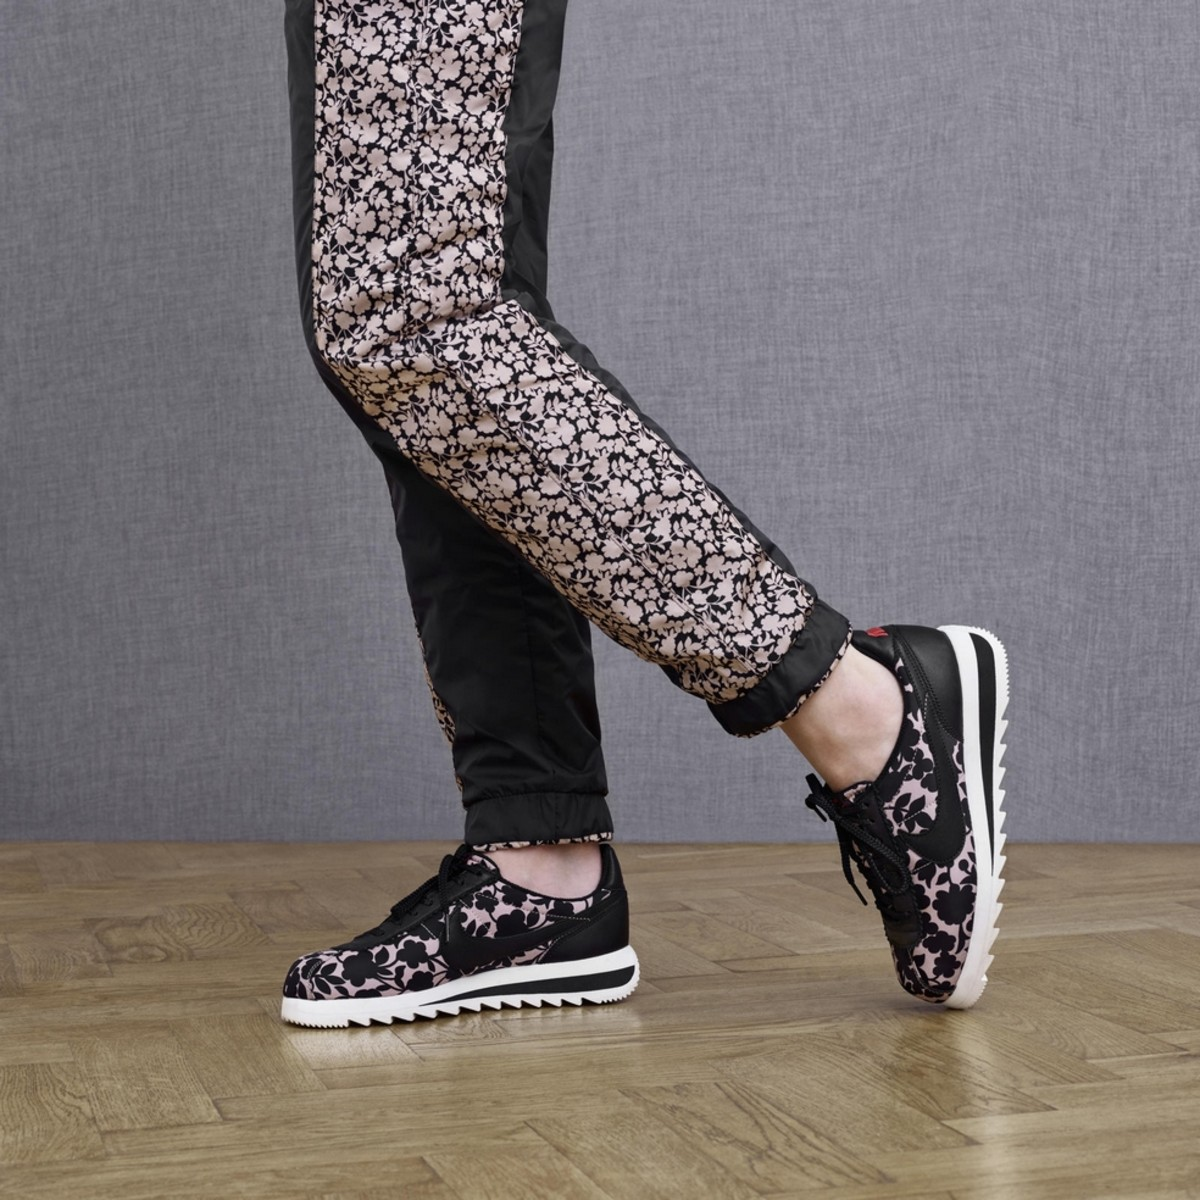 liberty-london-x-nike-floral-footwear-apparel-collection-04